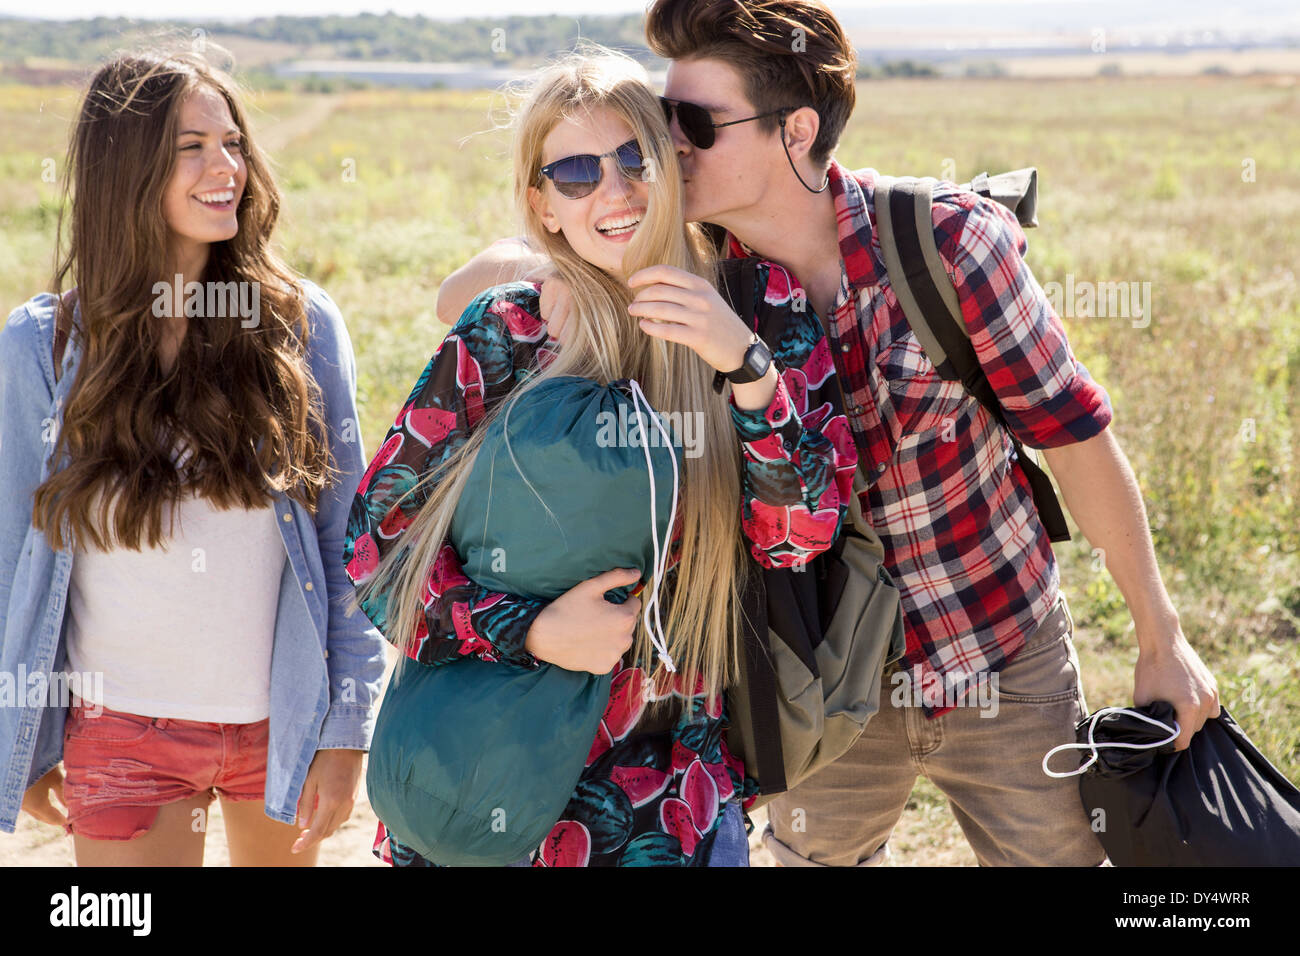 Three friends out hiking, man kissing woman - Stock Image